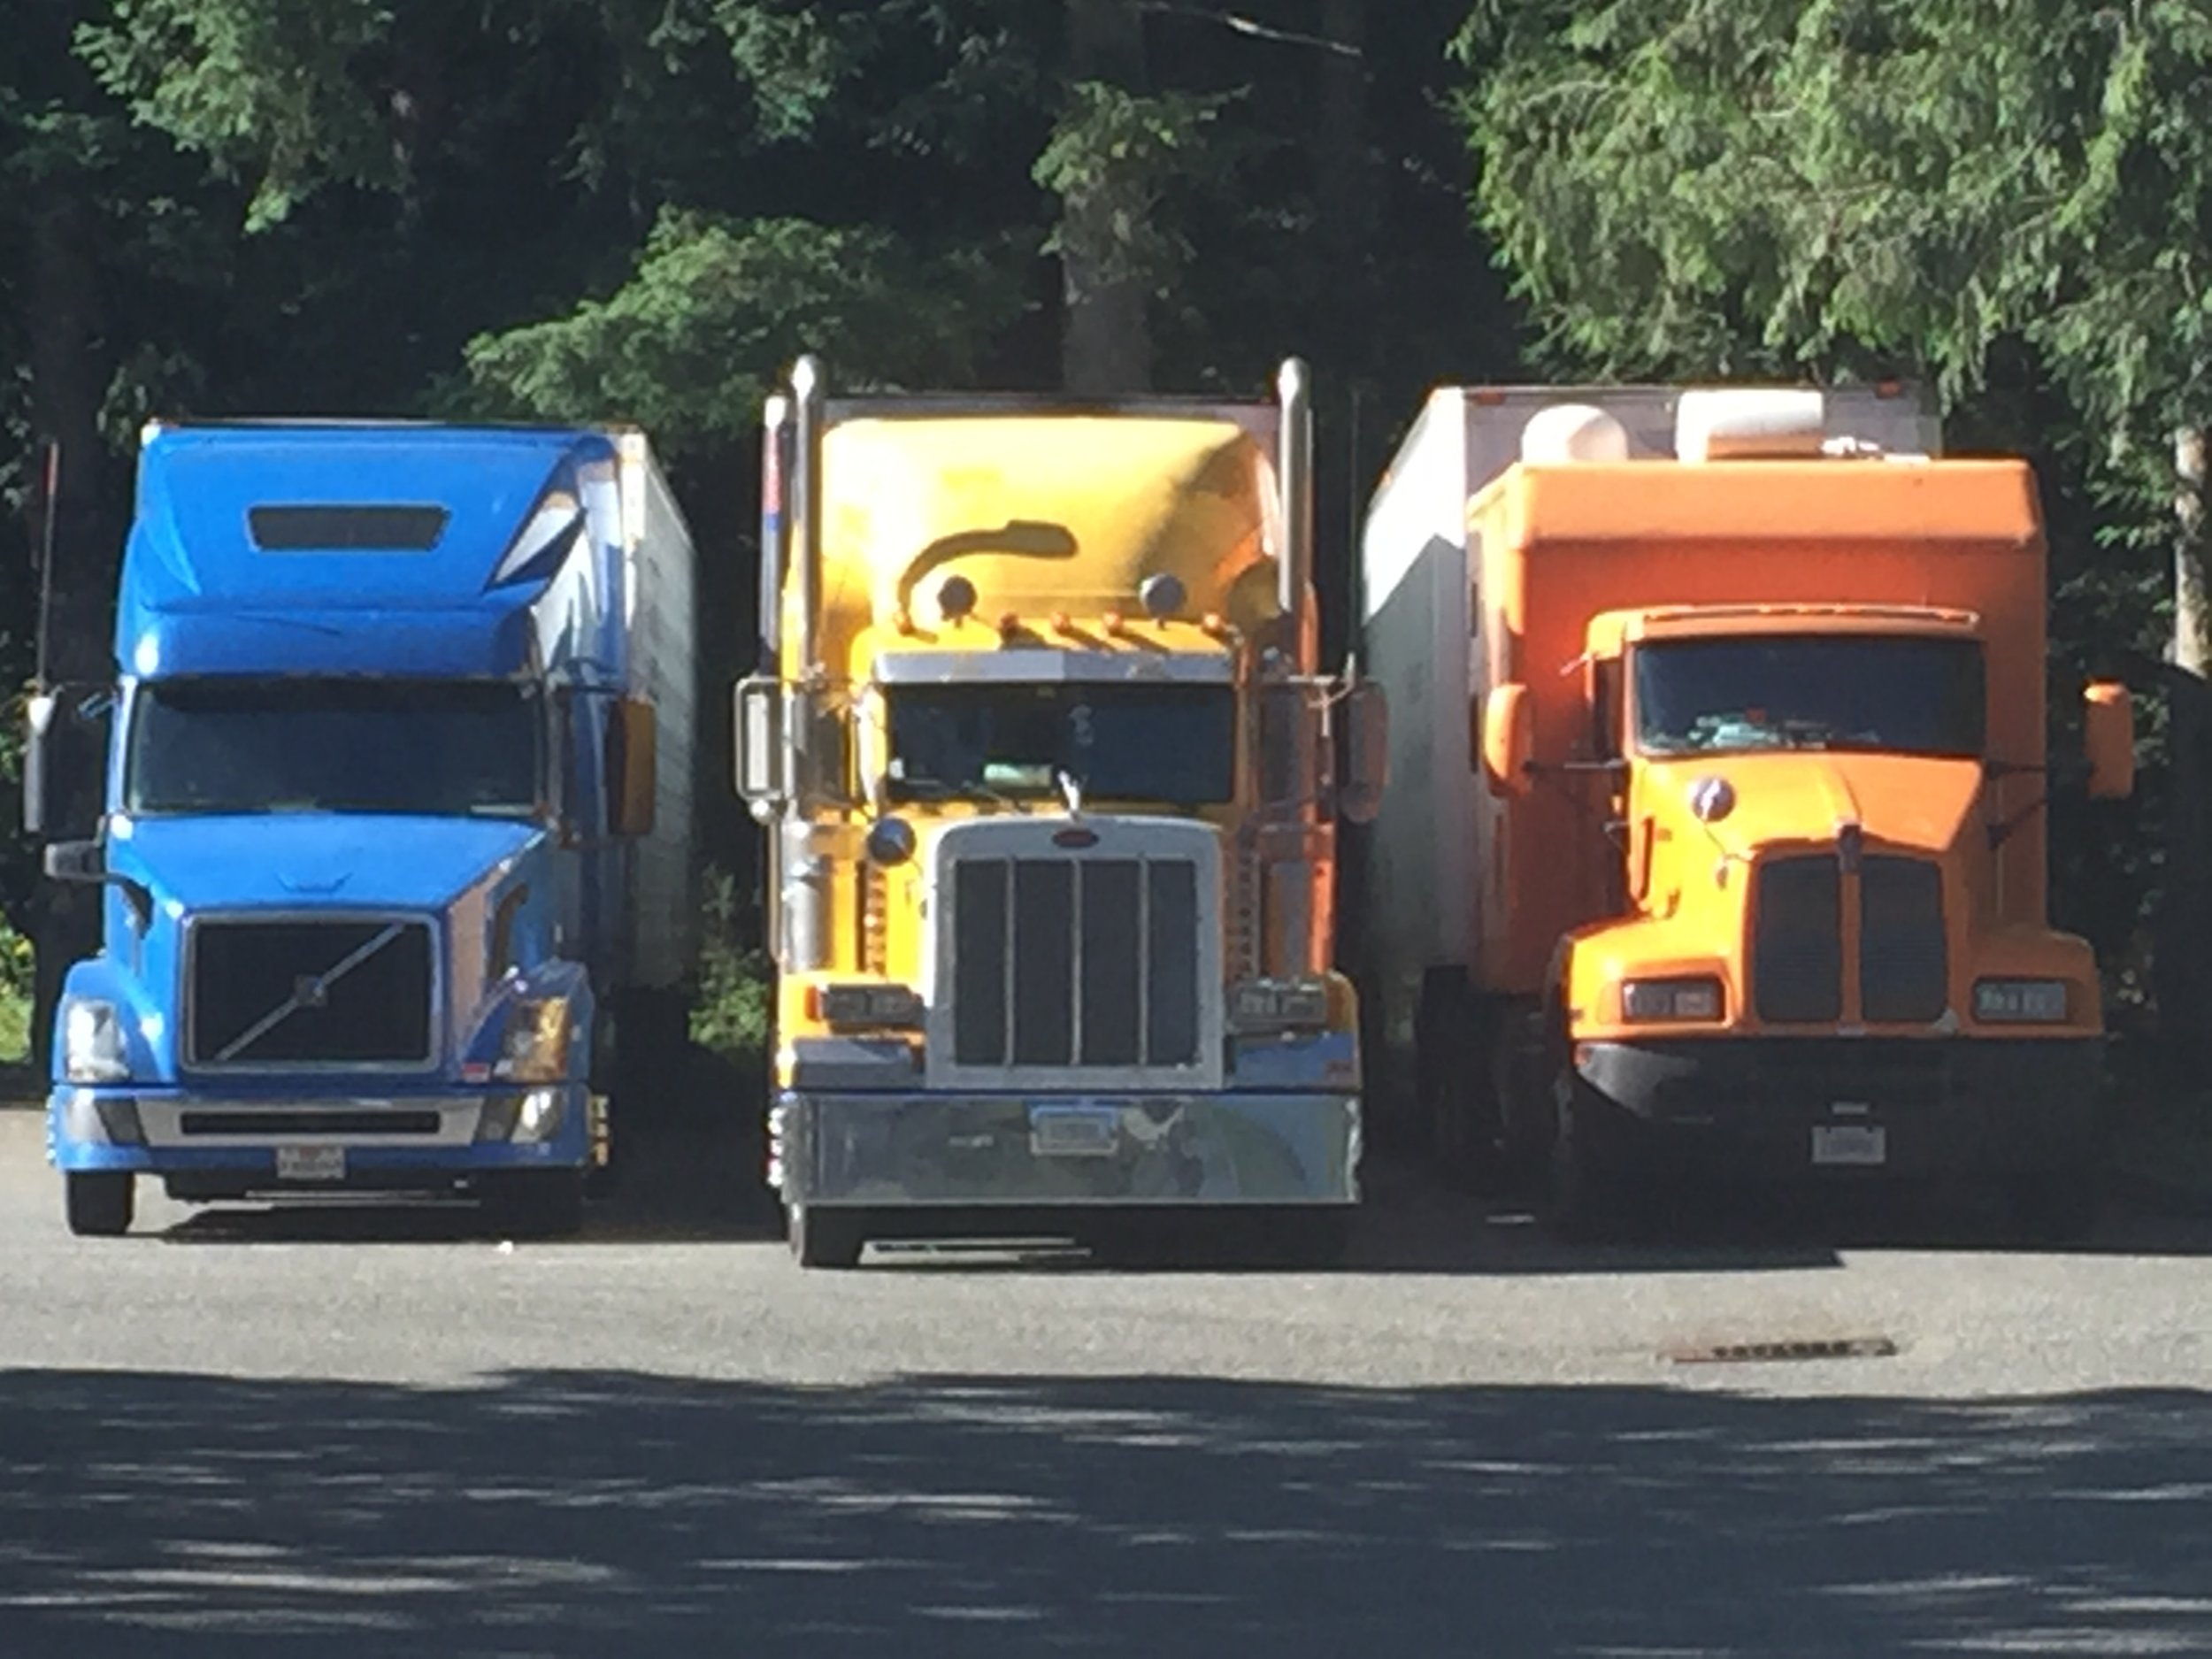 A real-life canvas of trucks at the Edgewick just like that picture wall in Snoqualmie.